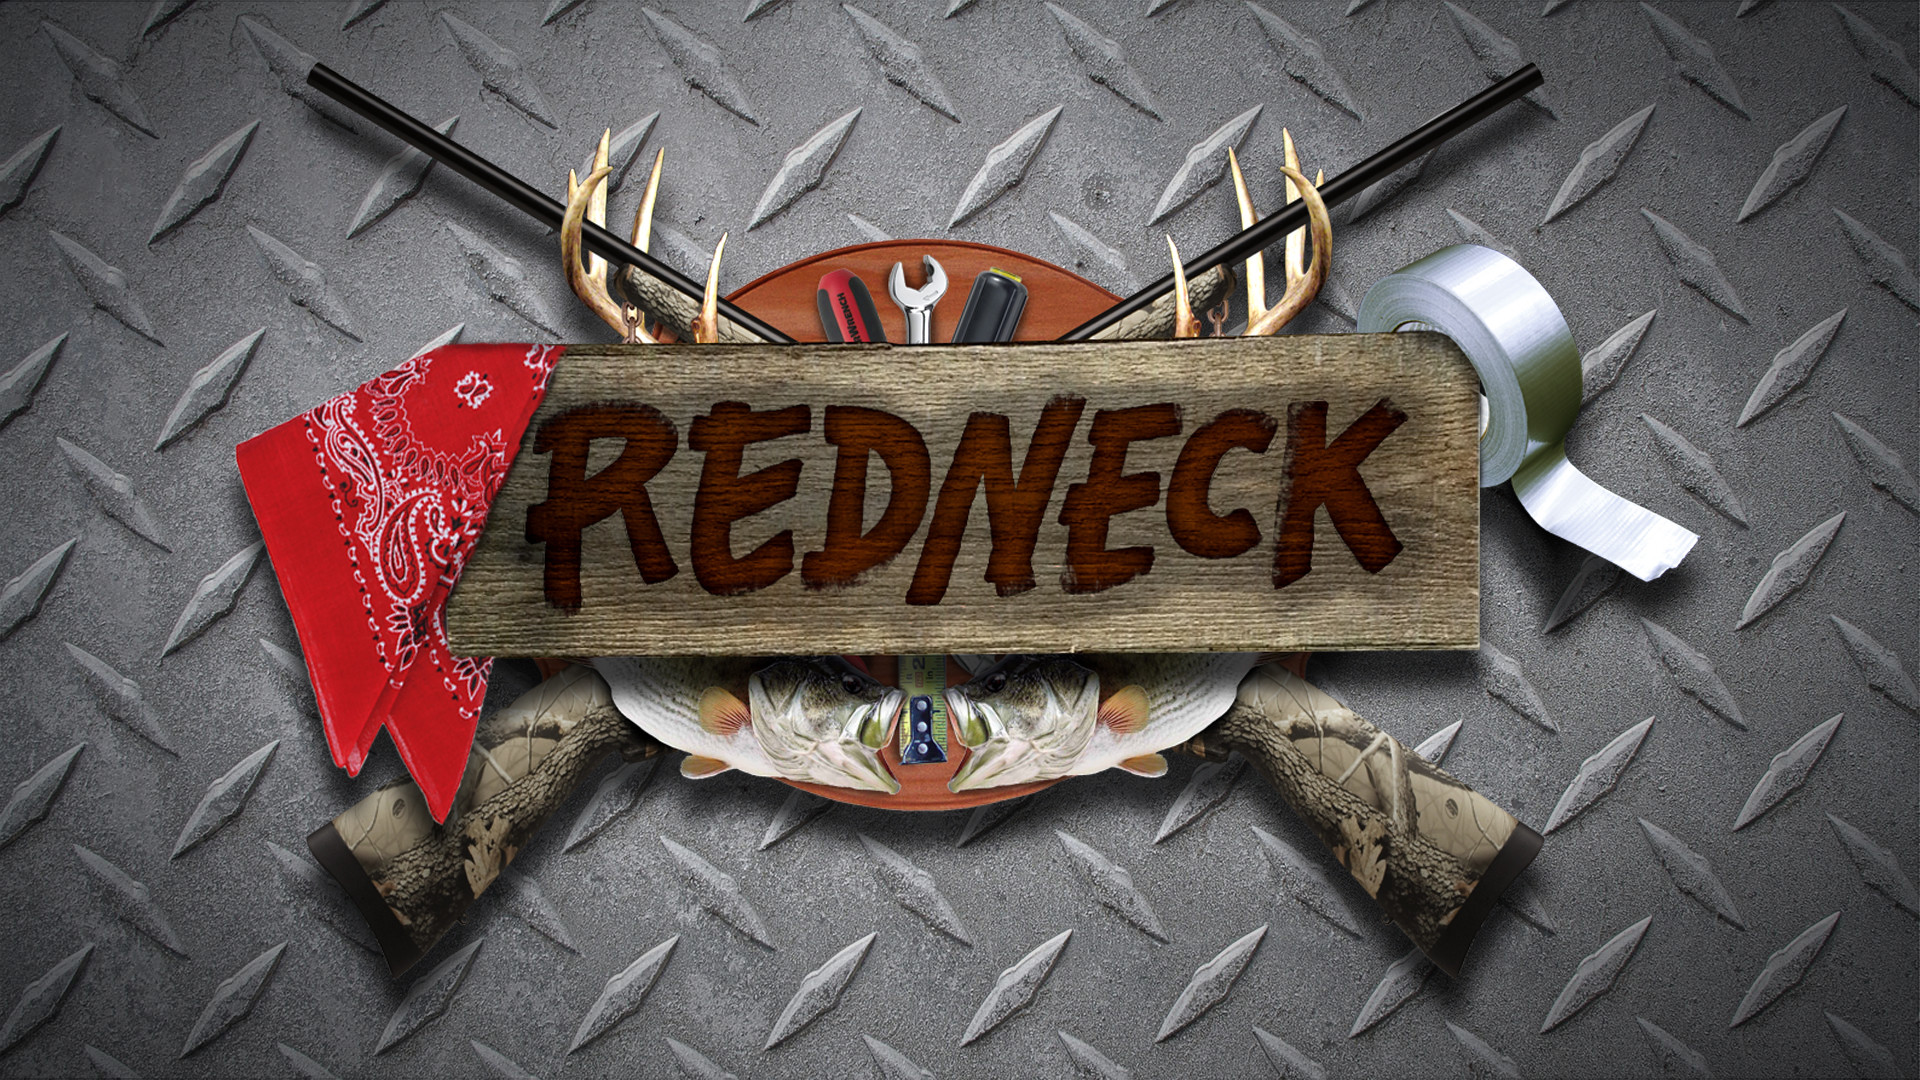 1920x1080 Redneck Wallpapers, 49 HD Redneck Wallpapers | Download Free .